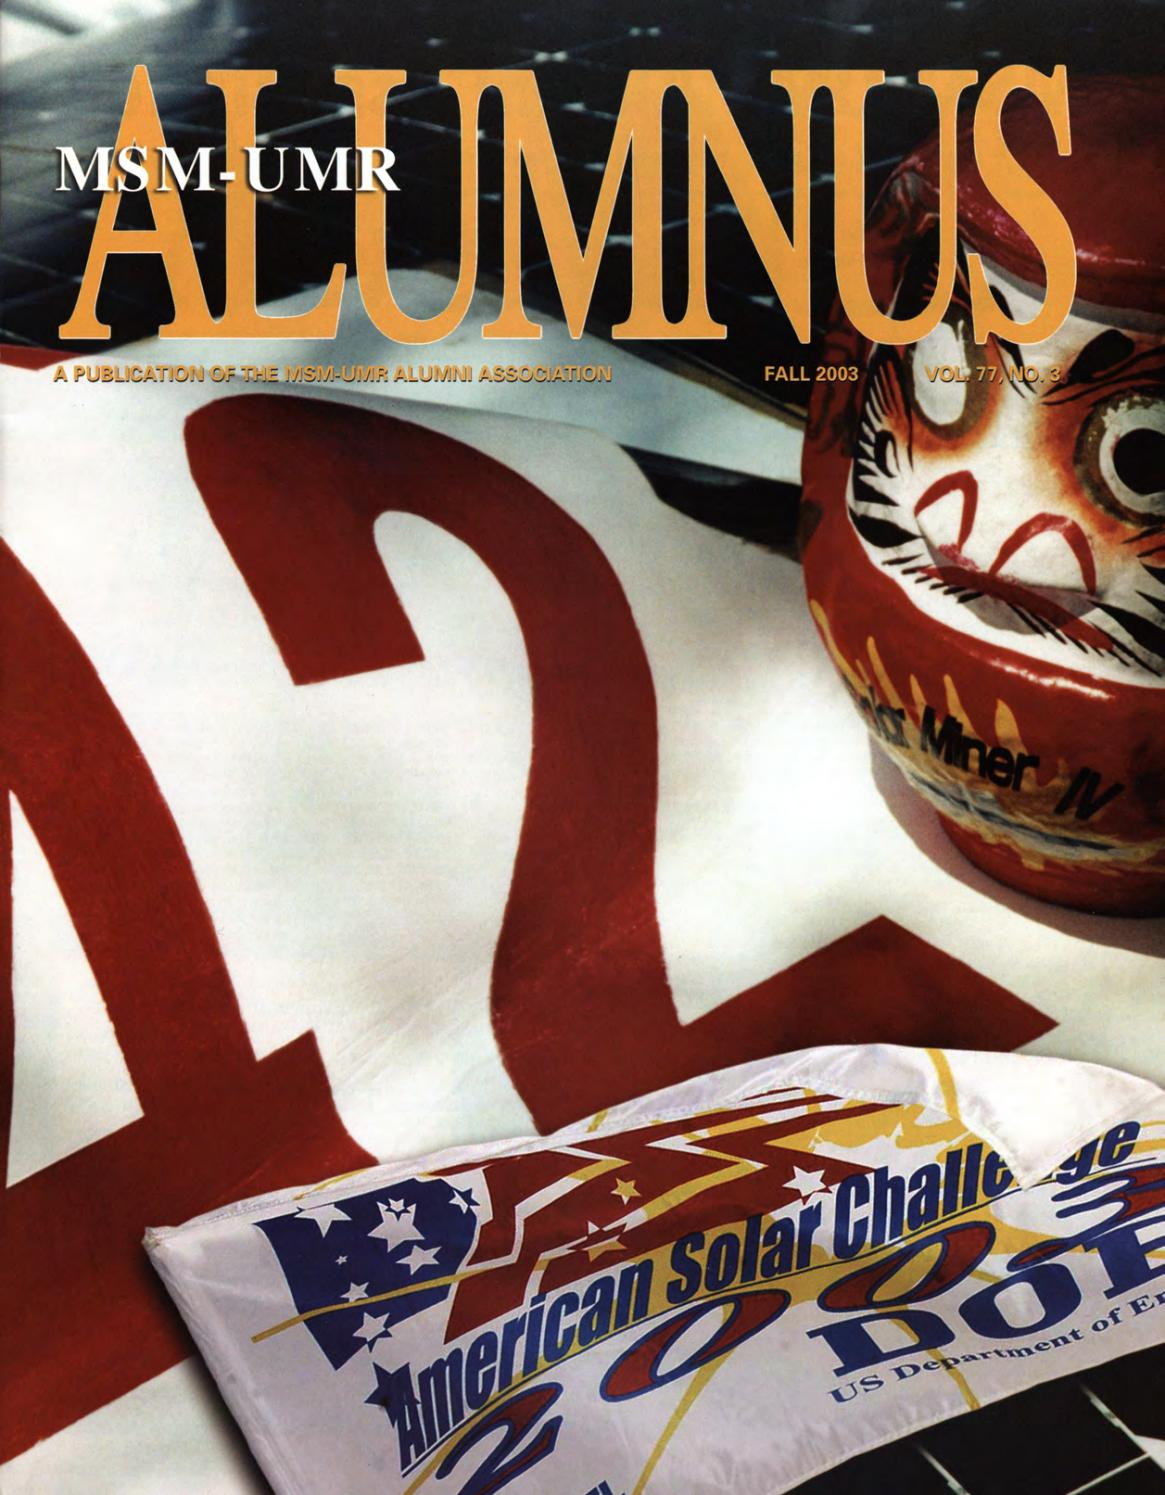 Missouri S&T Magazine Fall 2003 by Missouri S&T Library and ...